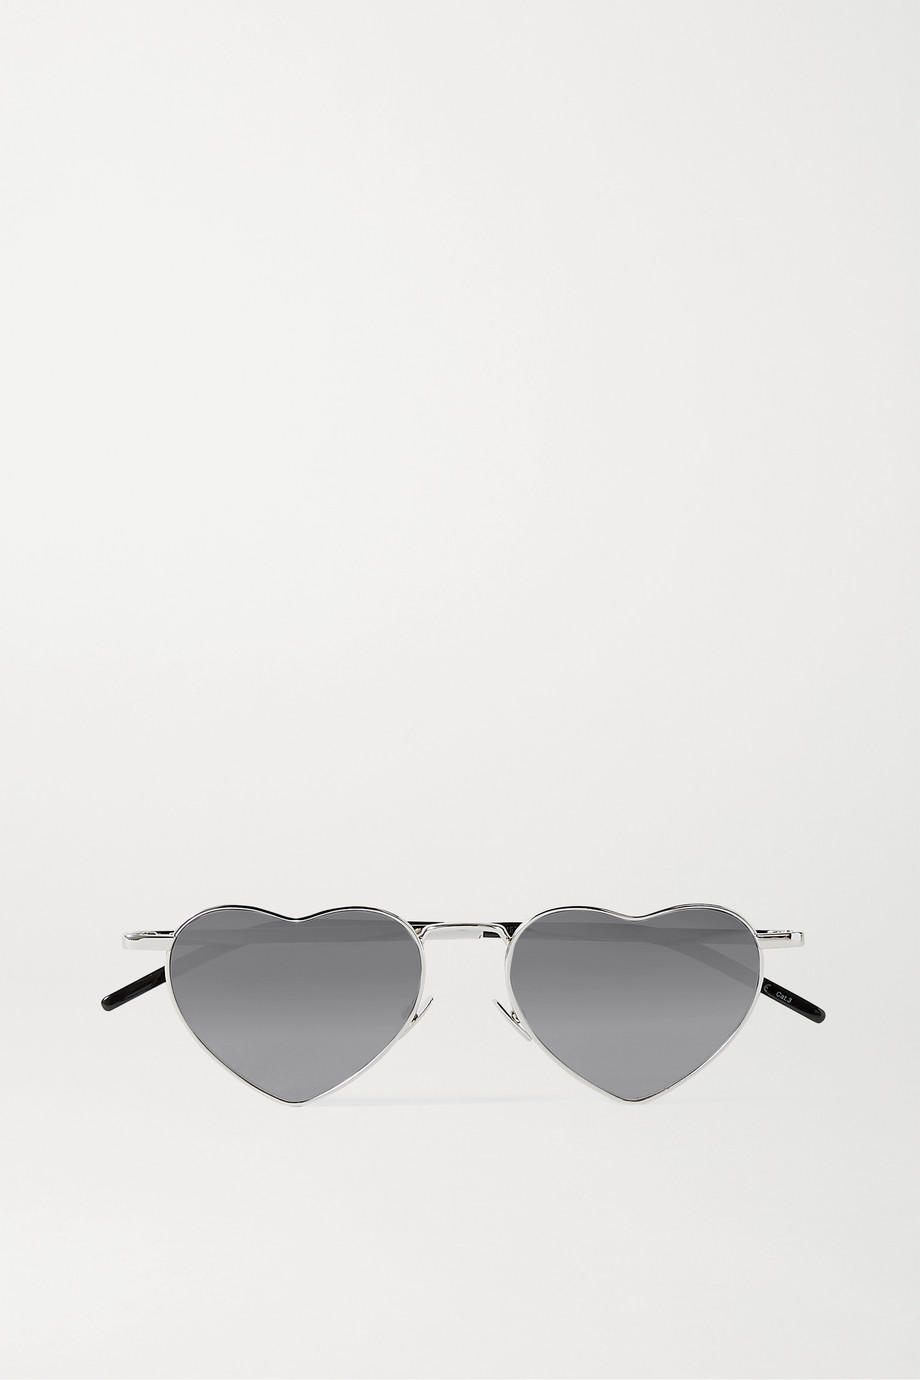 SAINT LAURENT Loulou heart-shaped silver-tone mirrored sunglasses